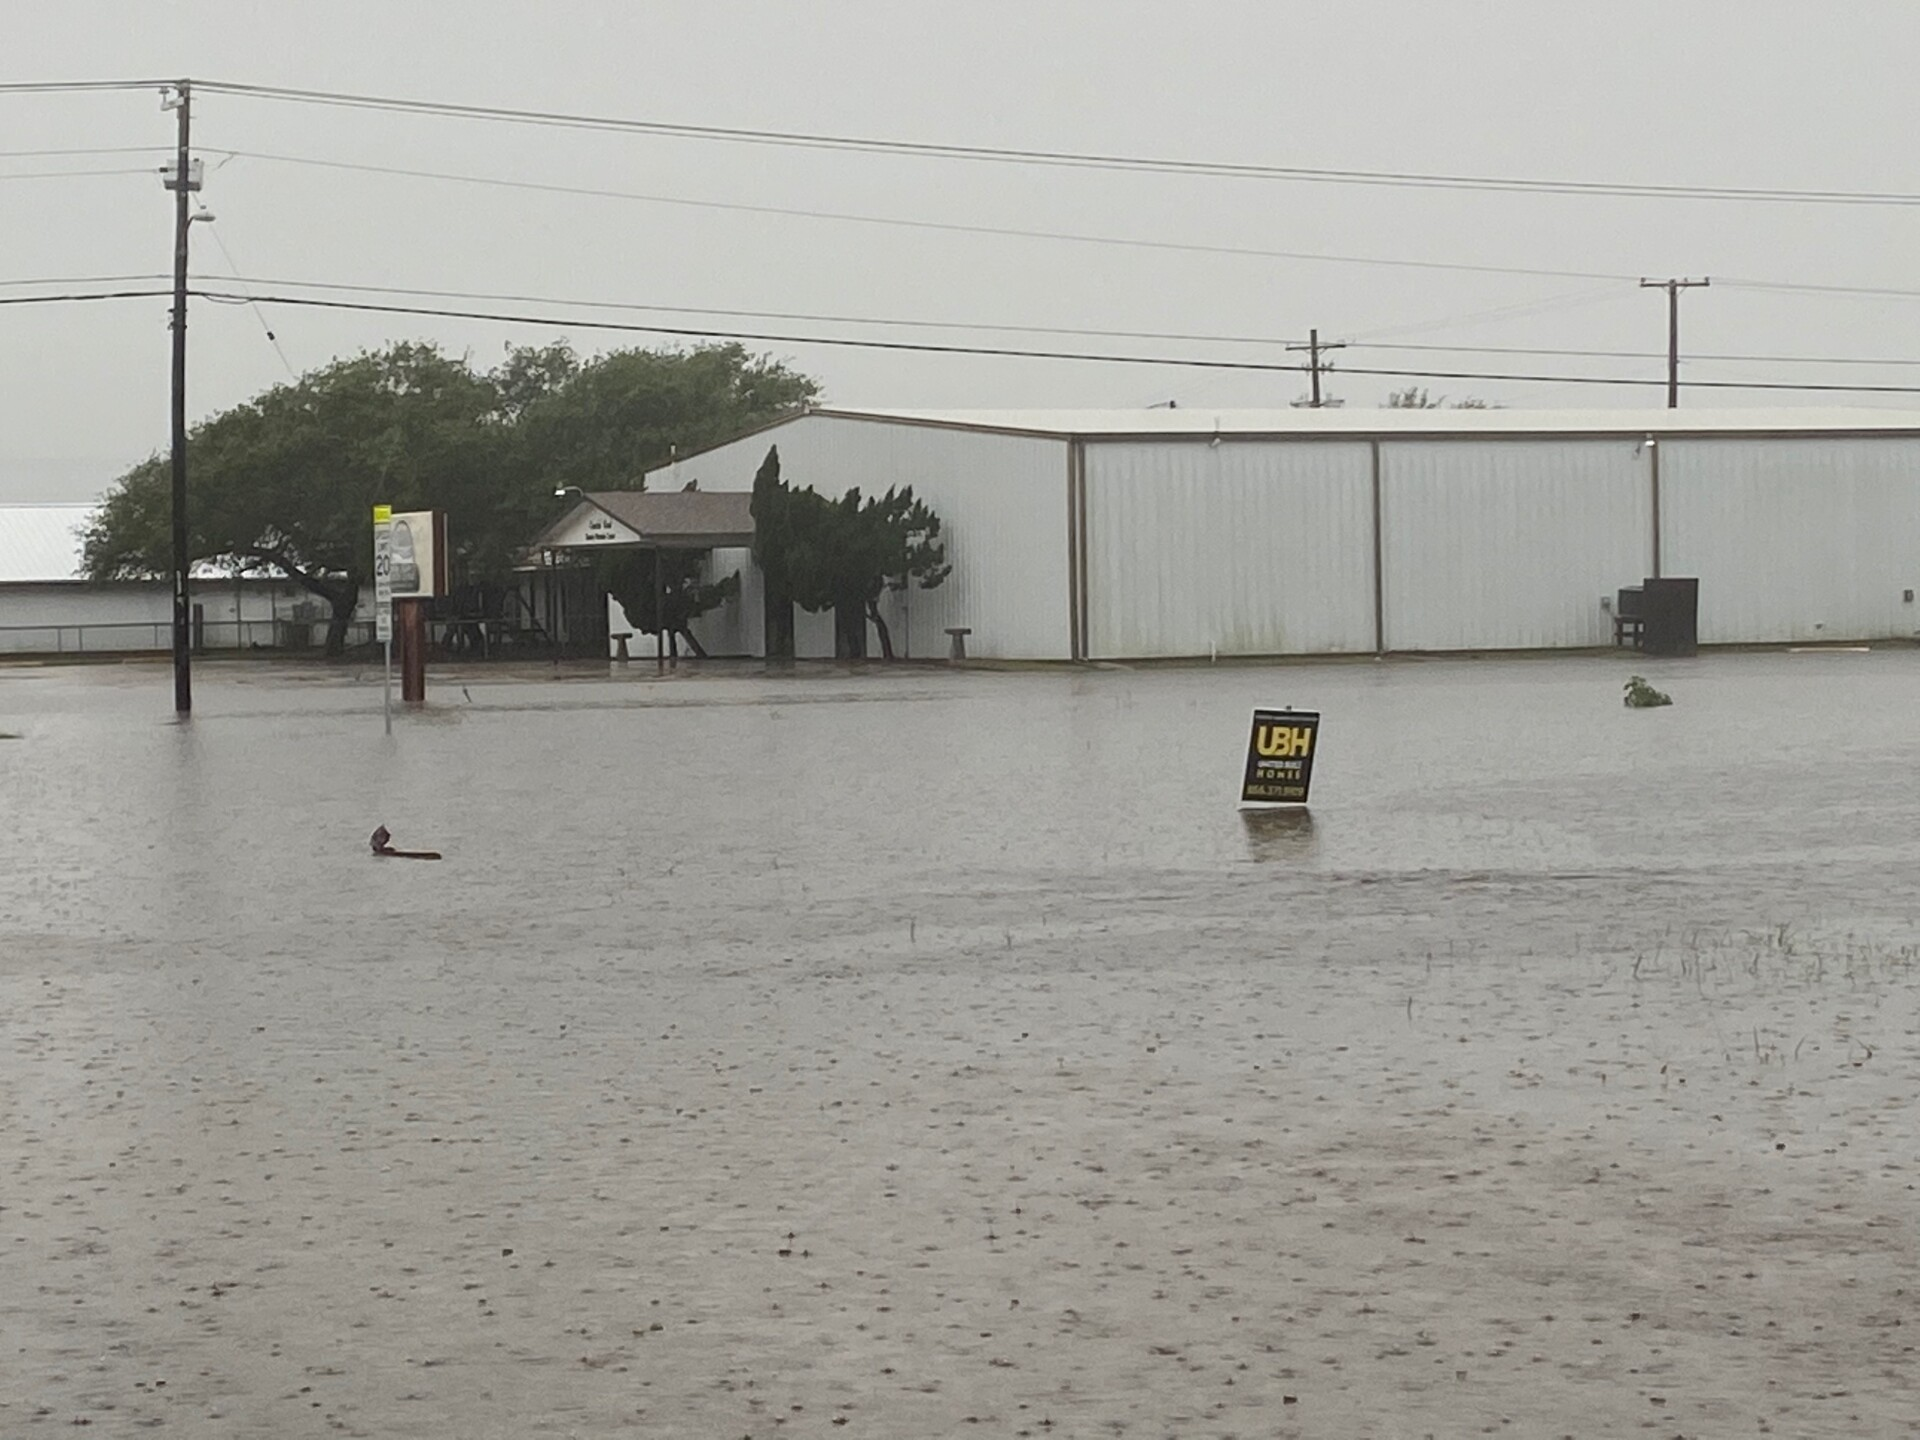 Seventh and Saunders in Aransas Pass